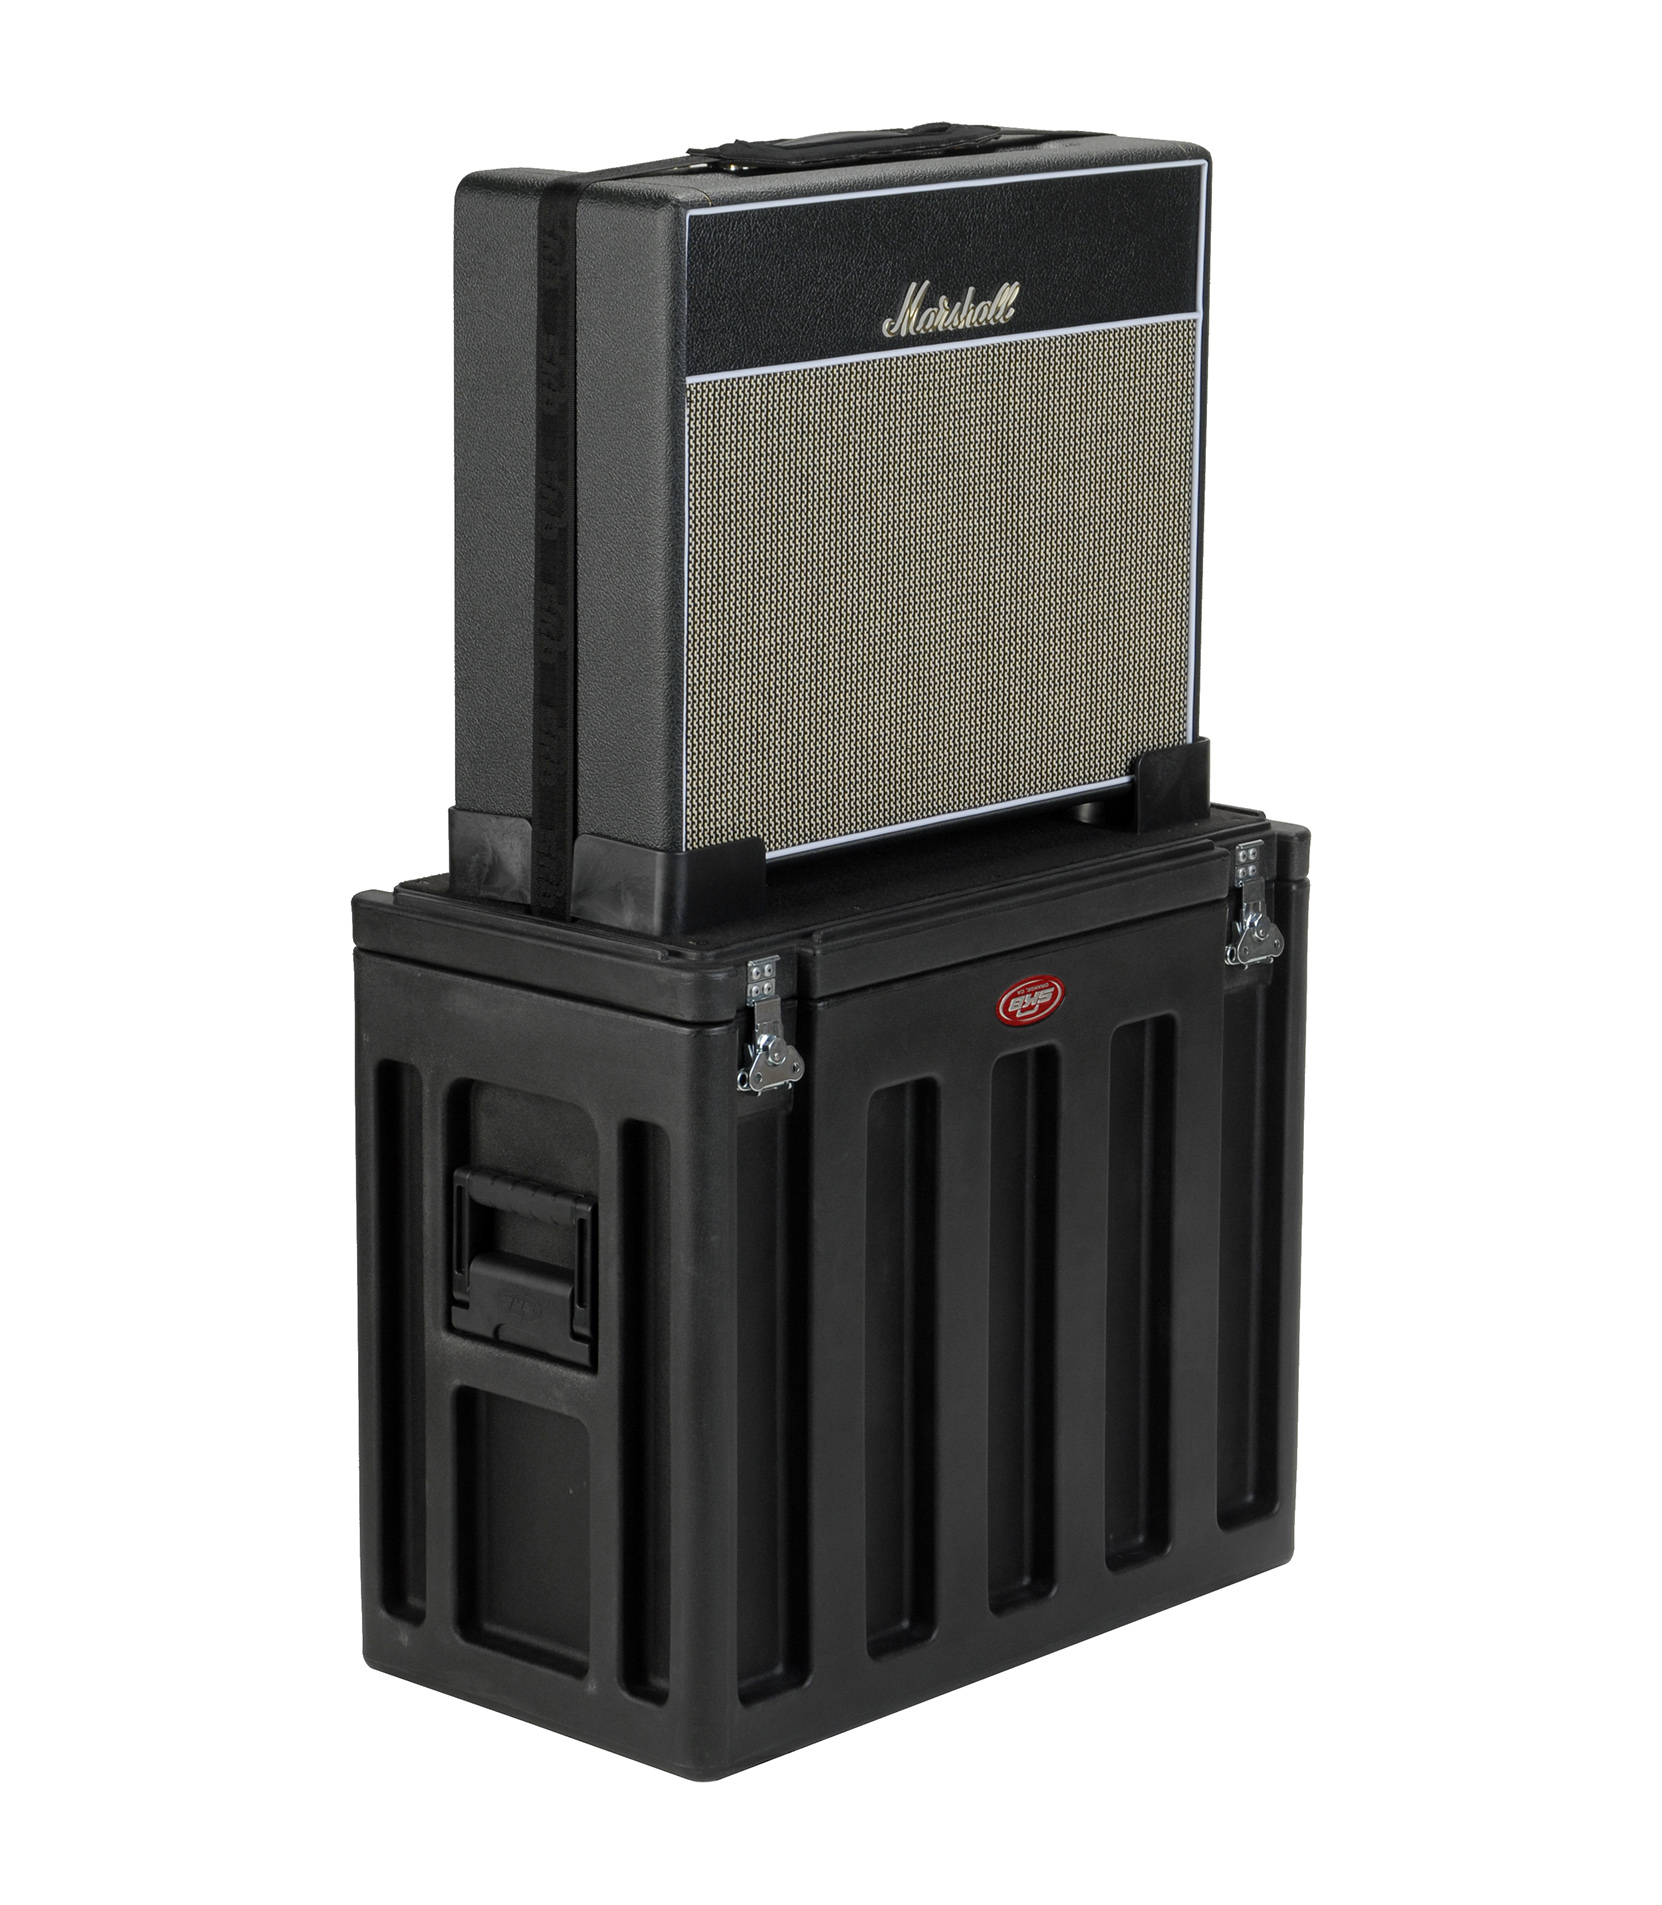 SKB - 1SKB R112AUV Fits 1x12 guitar amp cabinets Doubl - info@melodyhousemi.com